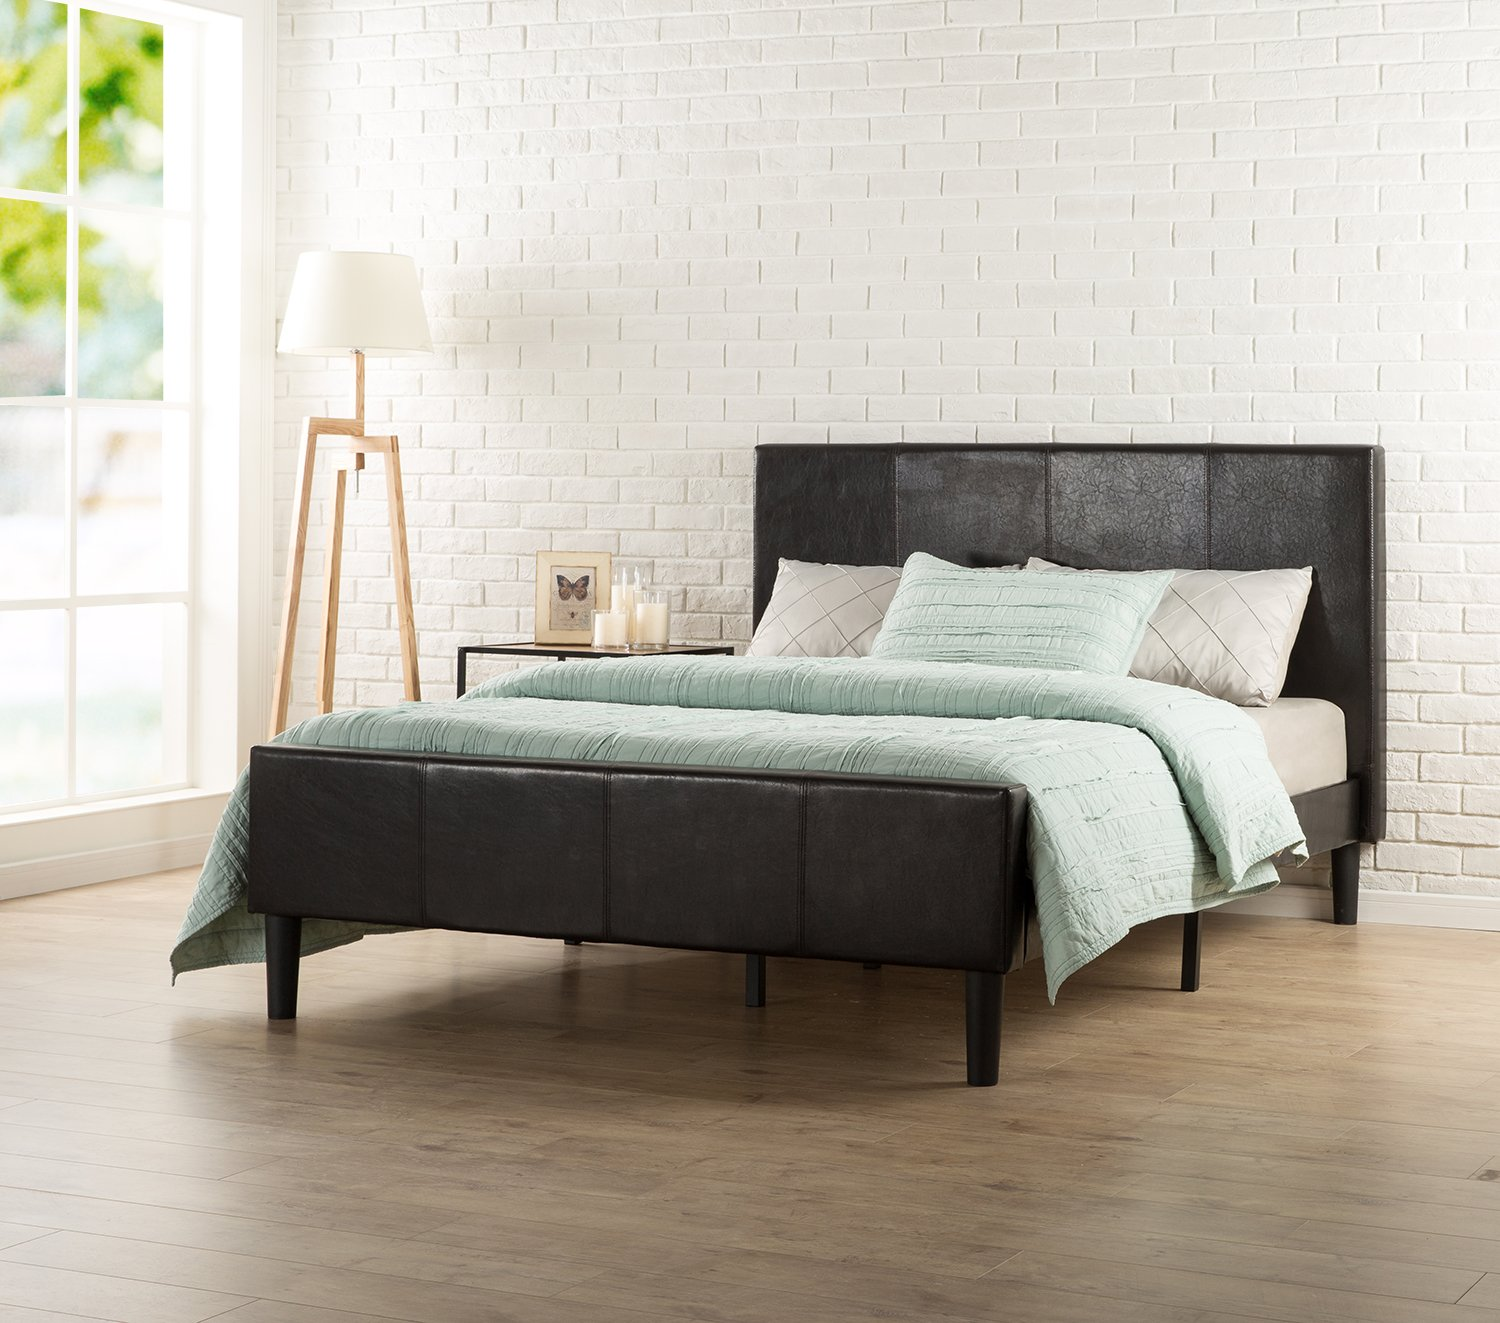 Zinus Deluxe Faux Leather Upholstered Platform Bed with Footboard and Wooden Slats, Queen, Espresso